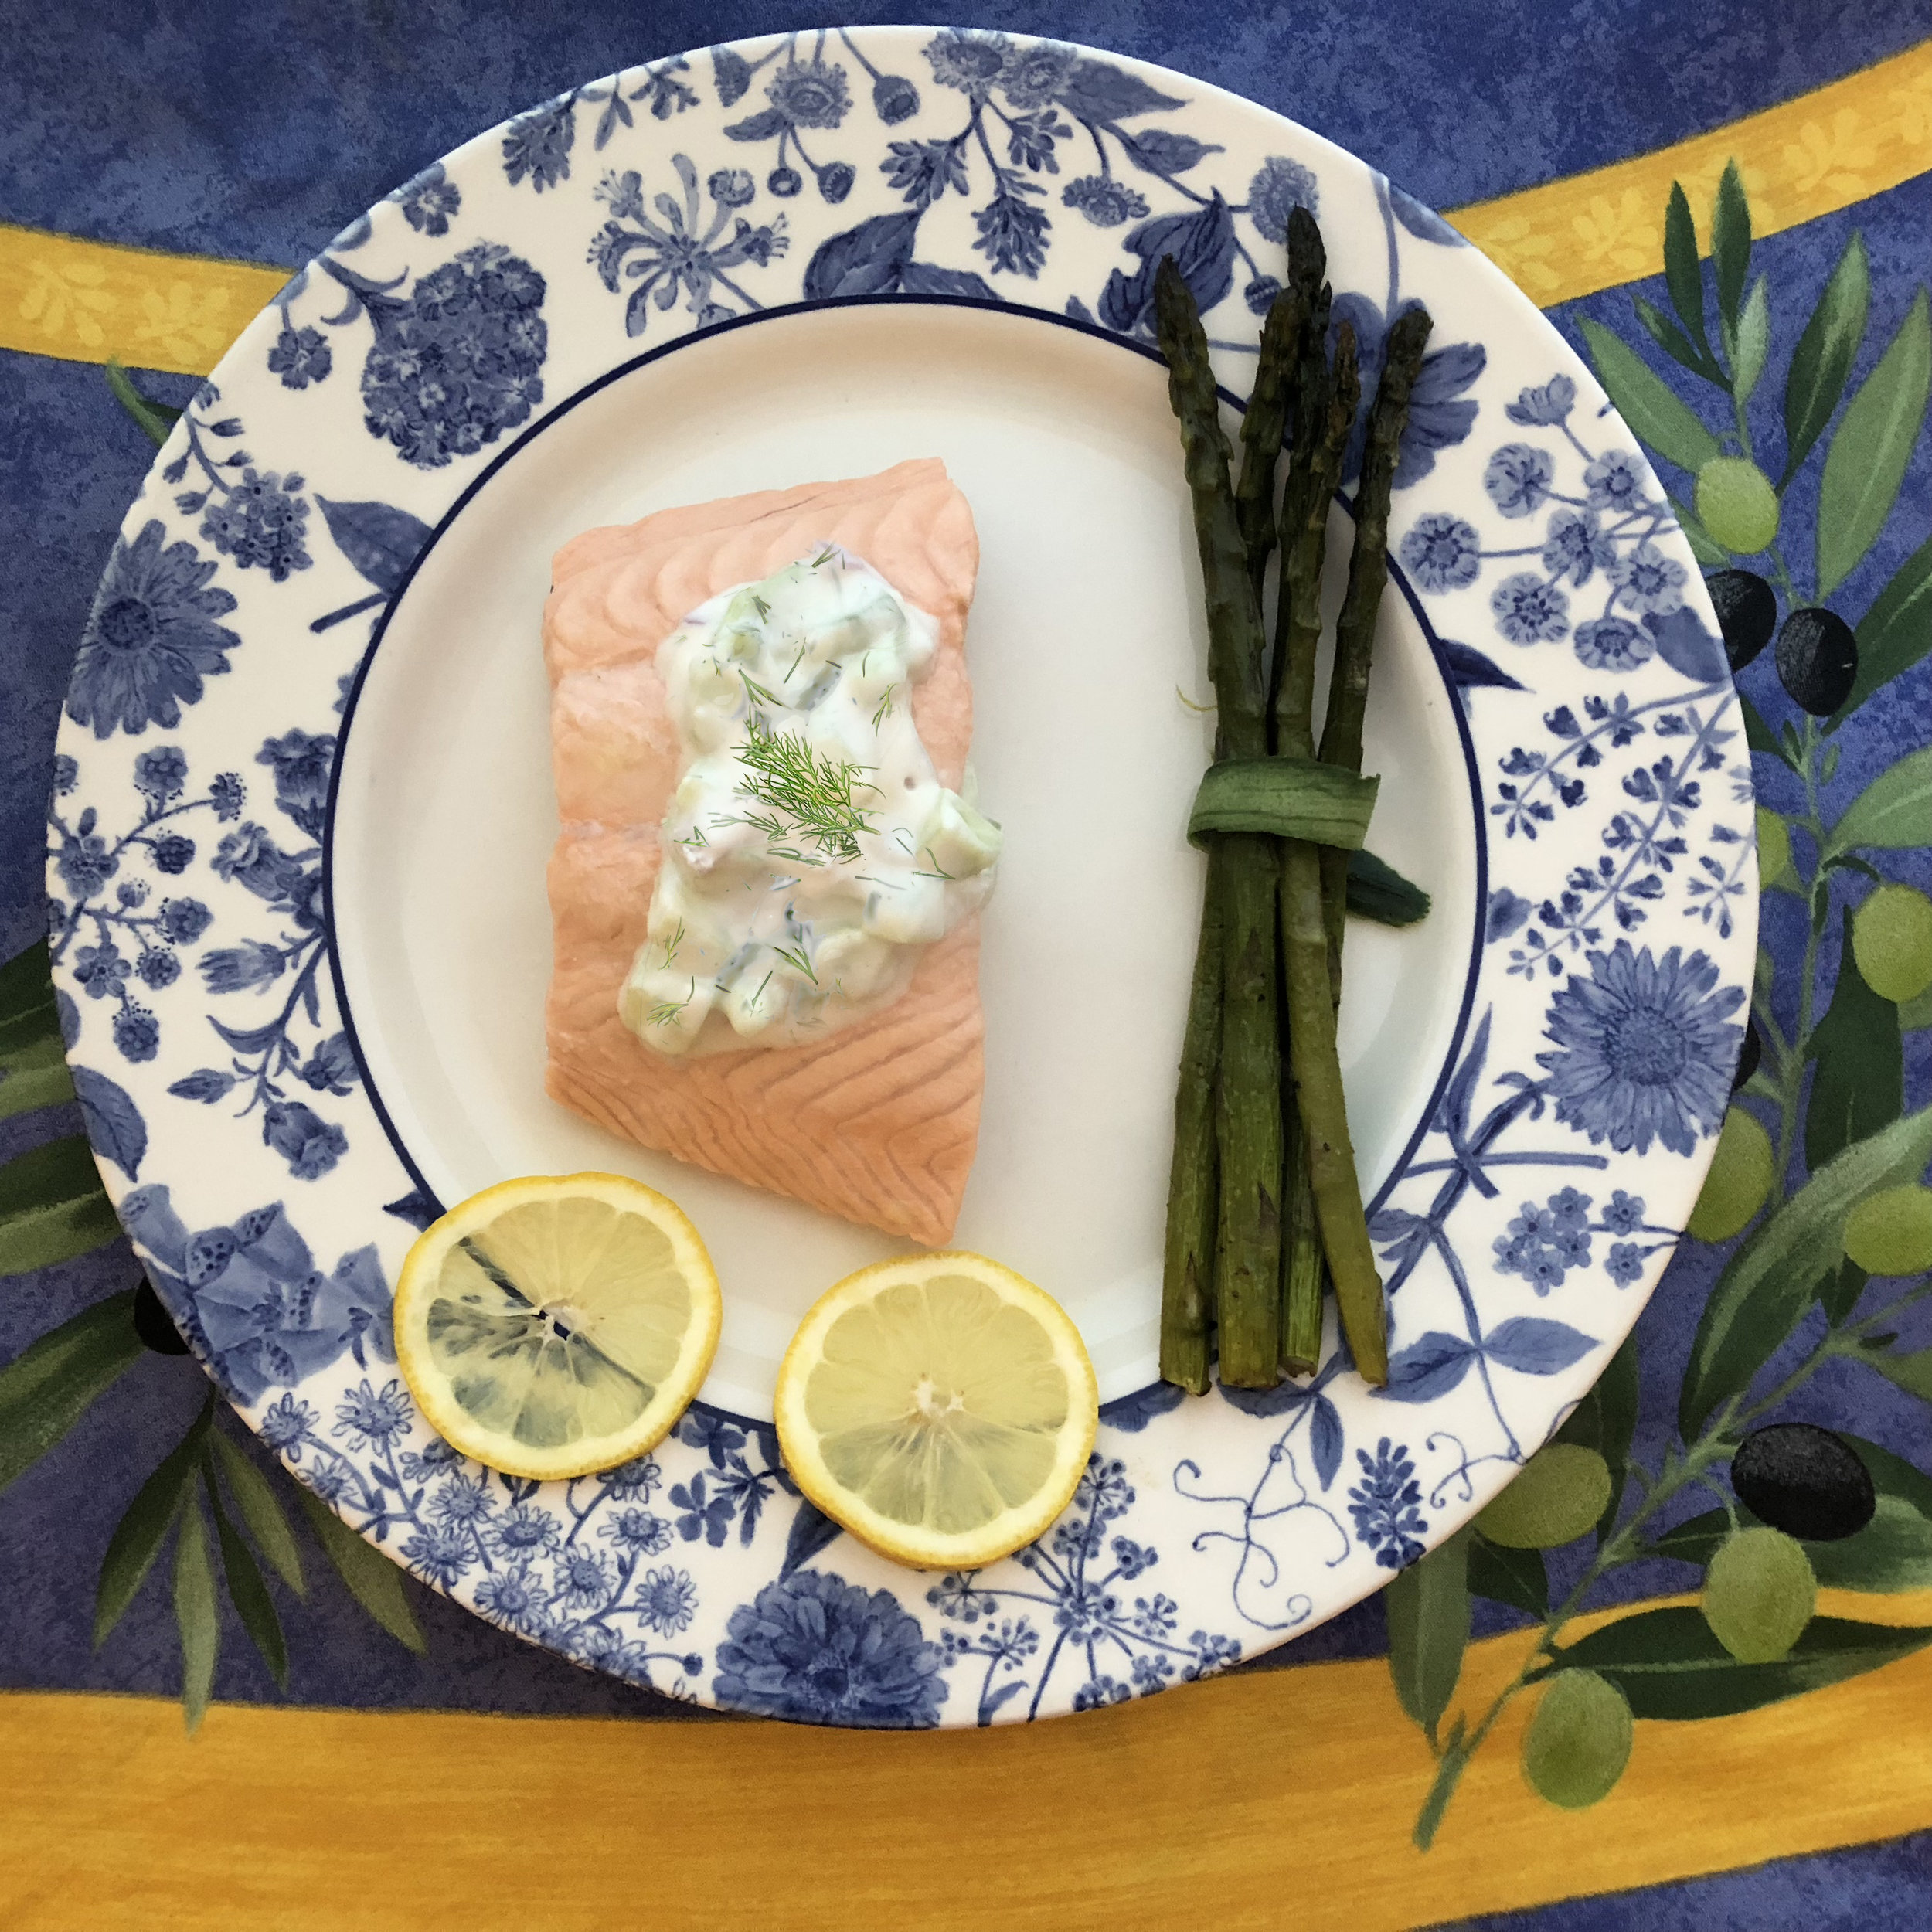 Poached Salmon with Cucumber Dill Sauce and Asparagus